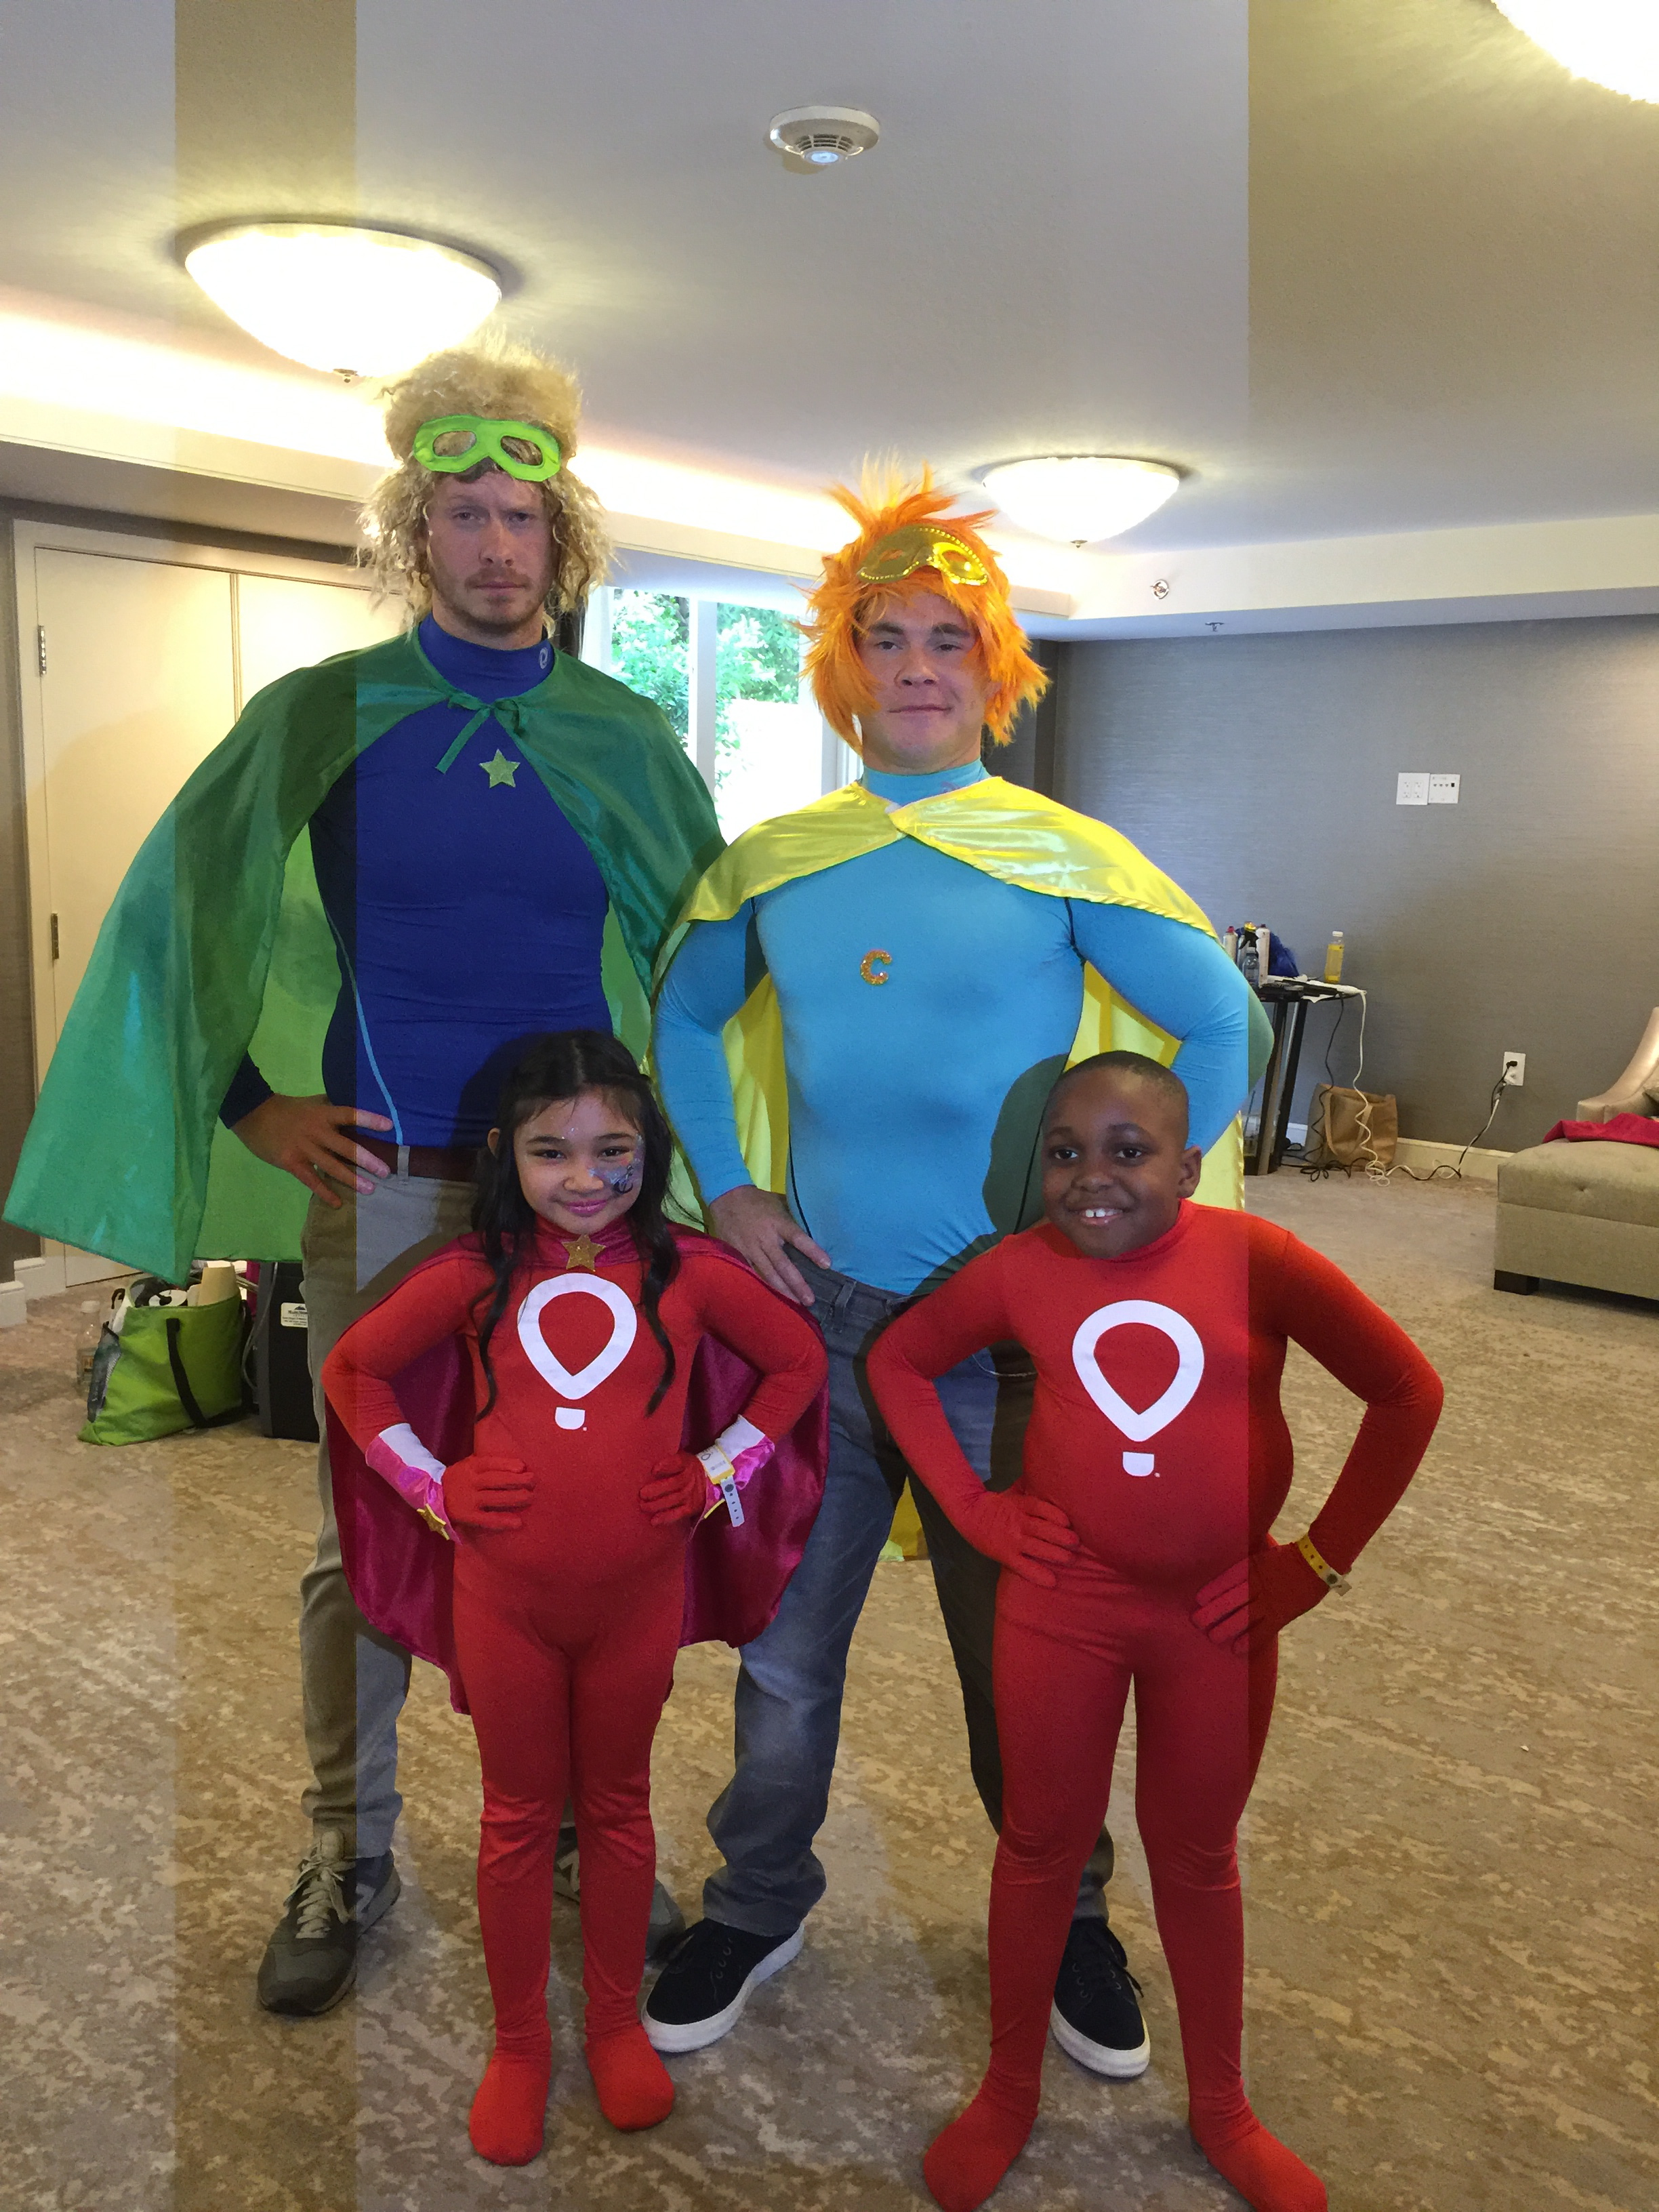 Superheroes for kids! May 24, 2016 4061